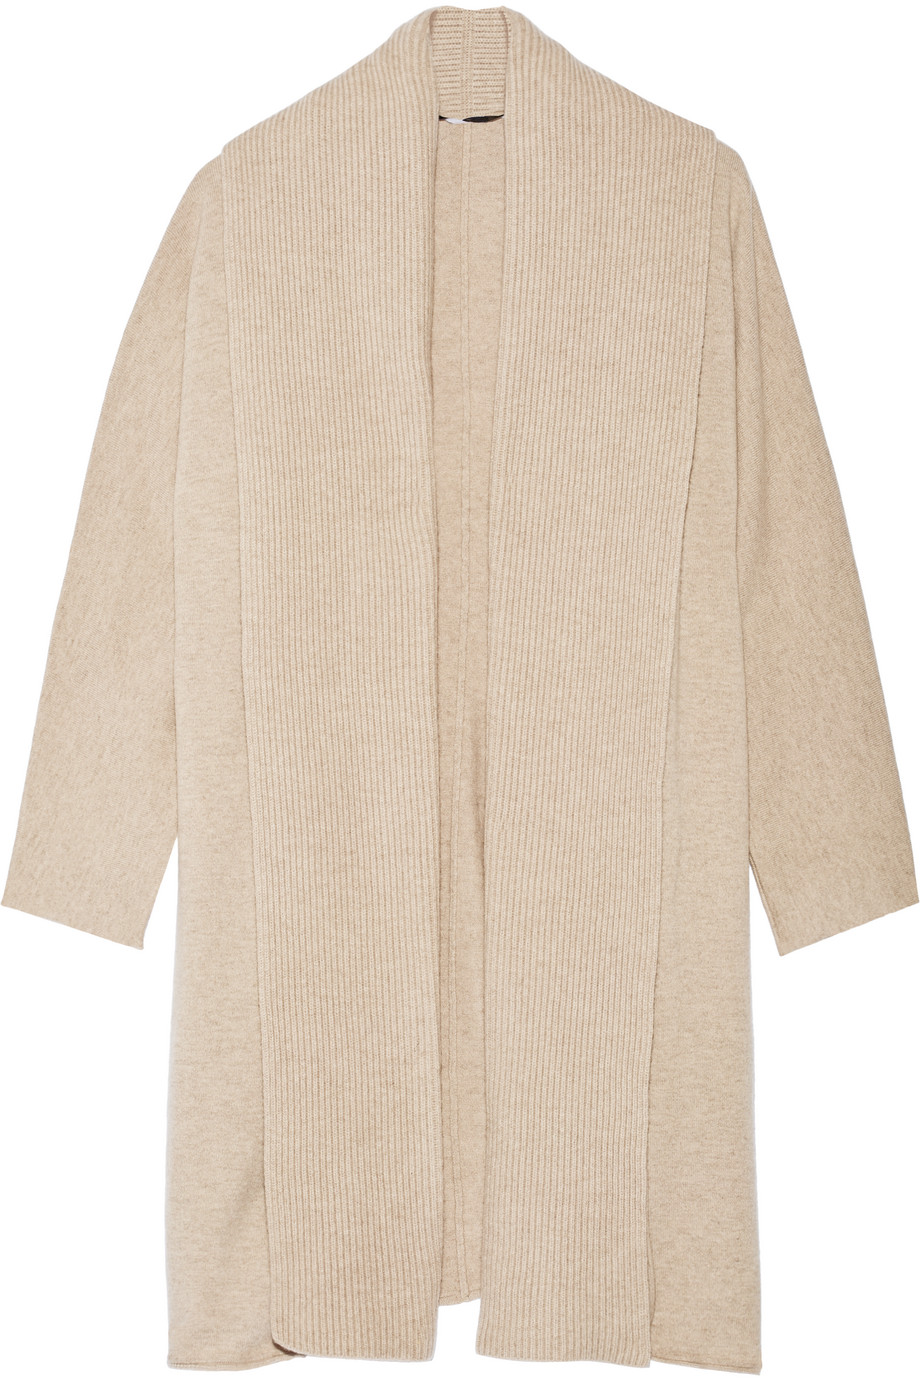 Rosetta Getty Wool and Cashmere-Blend Cardigan, Beige, Women's, Size: S